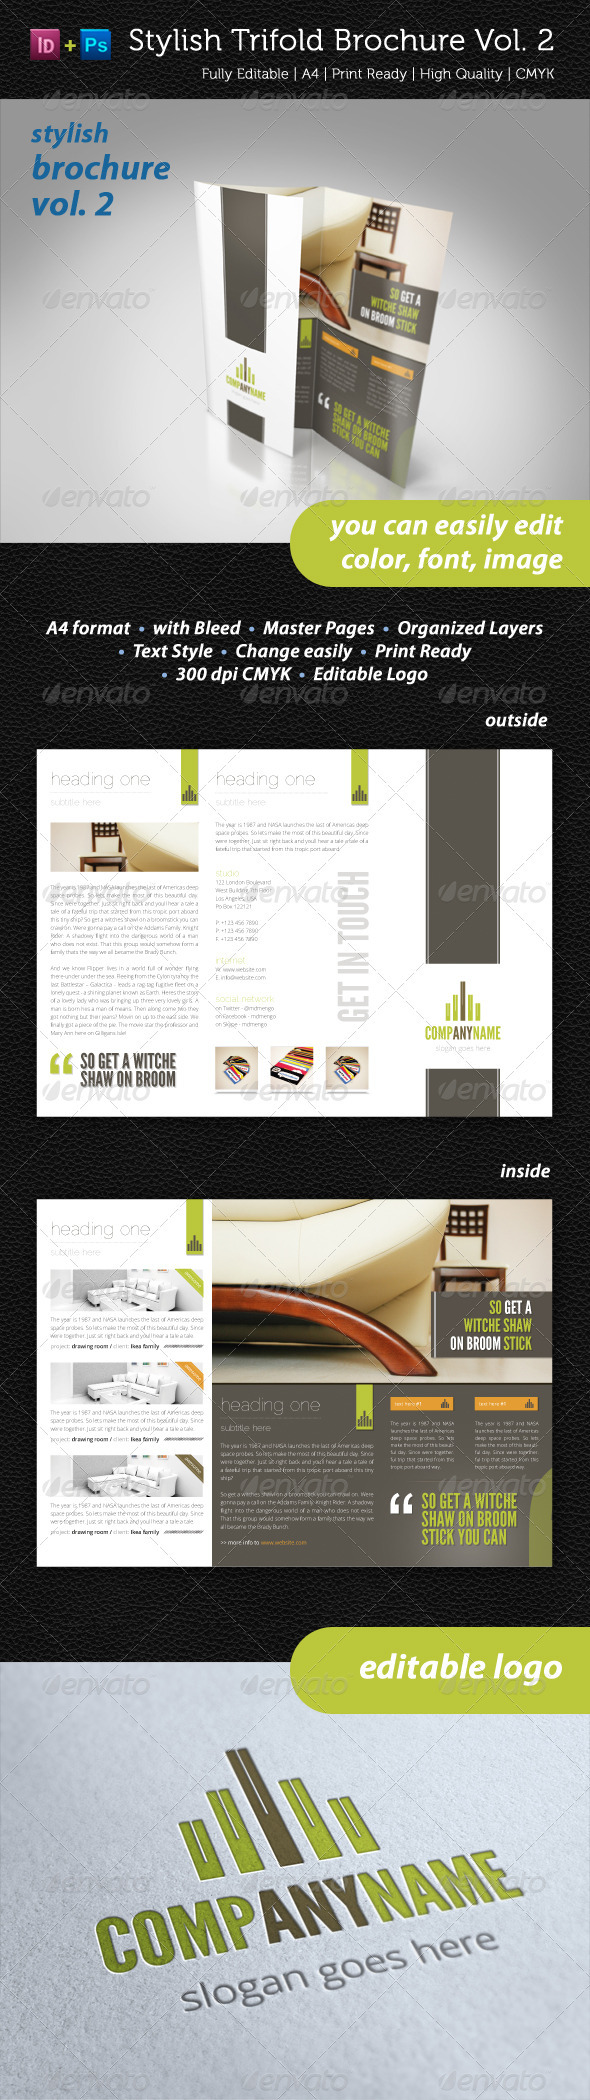 GraphicRiver Stylish Trifold Brochure Vol 2 2370972